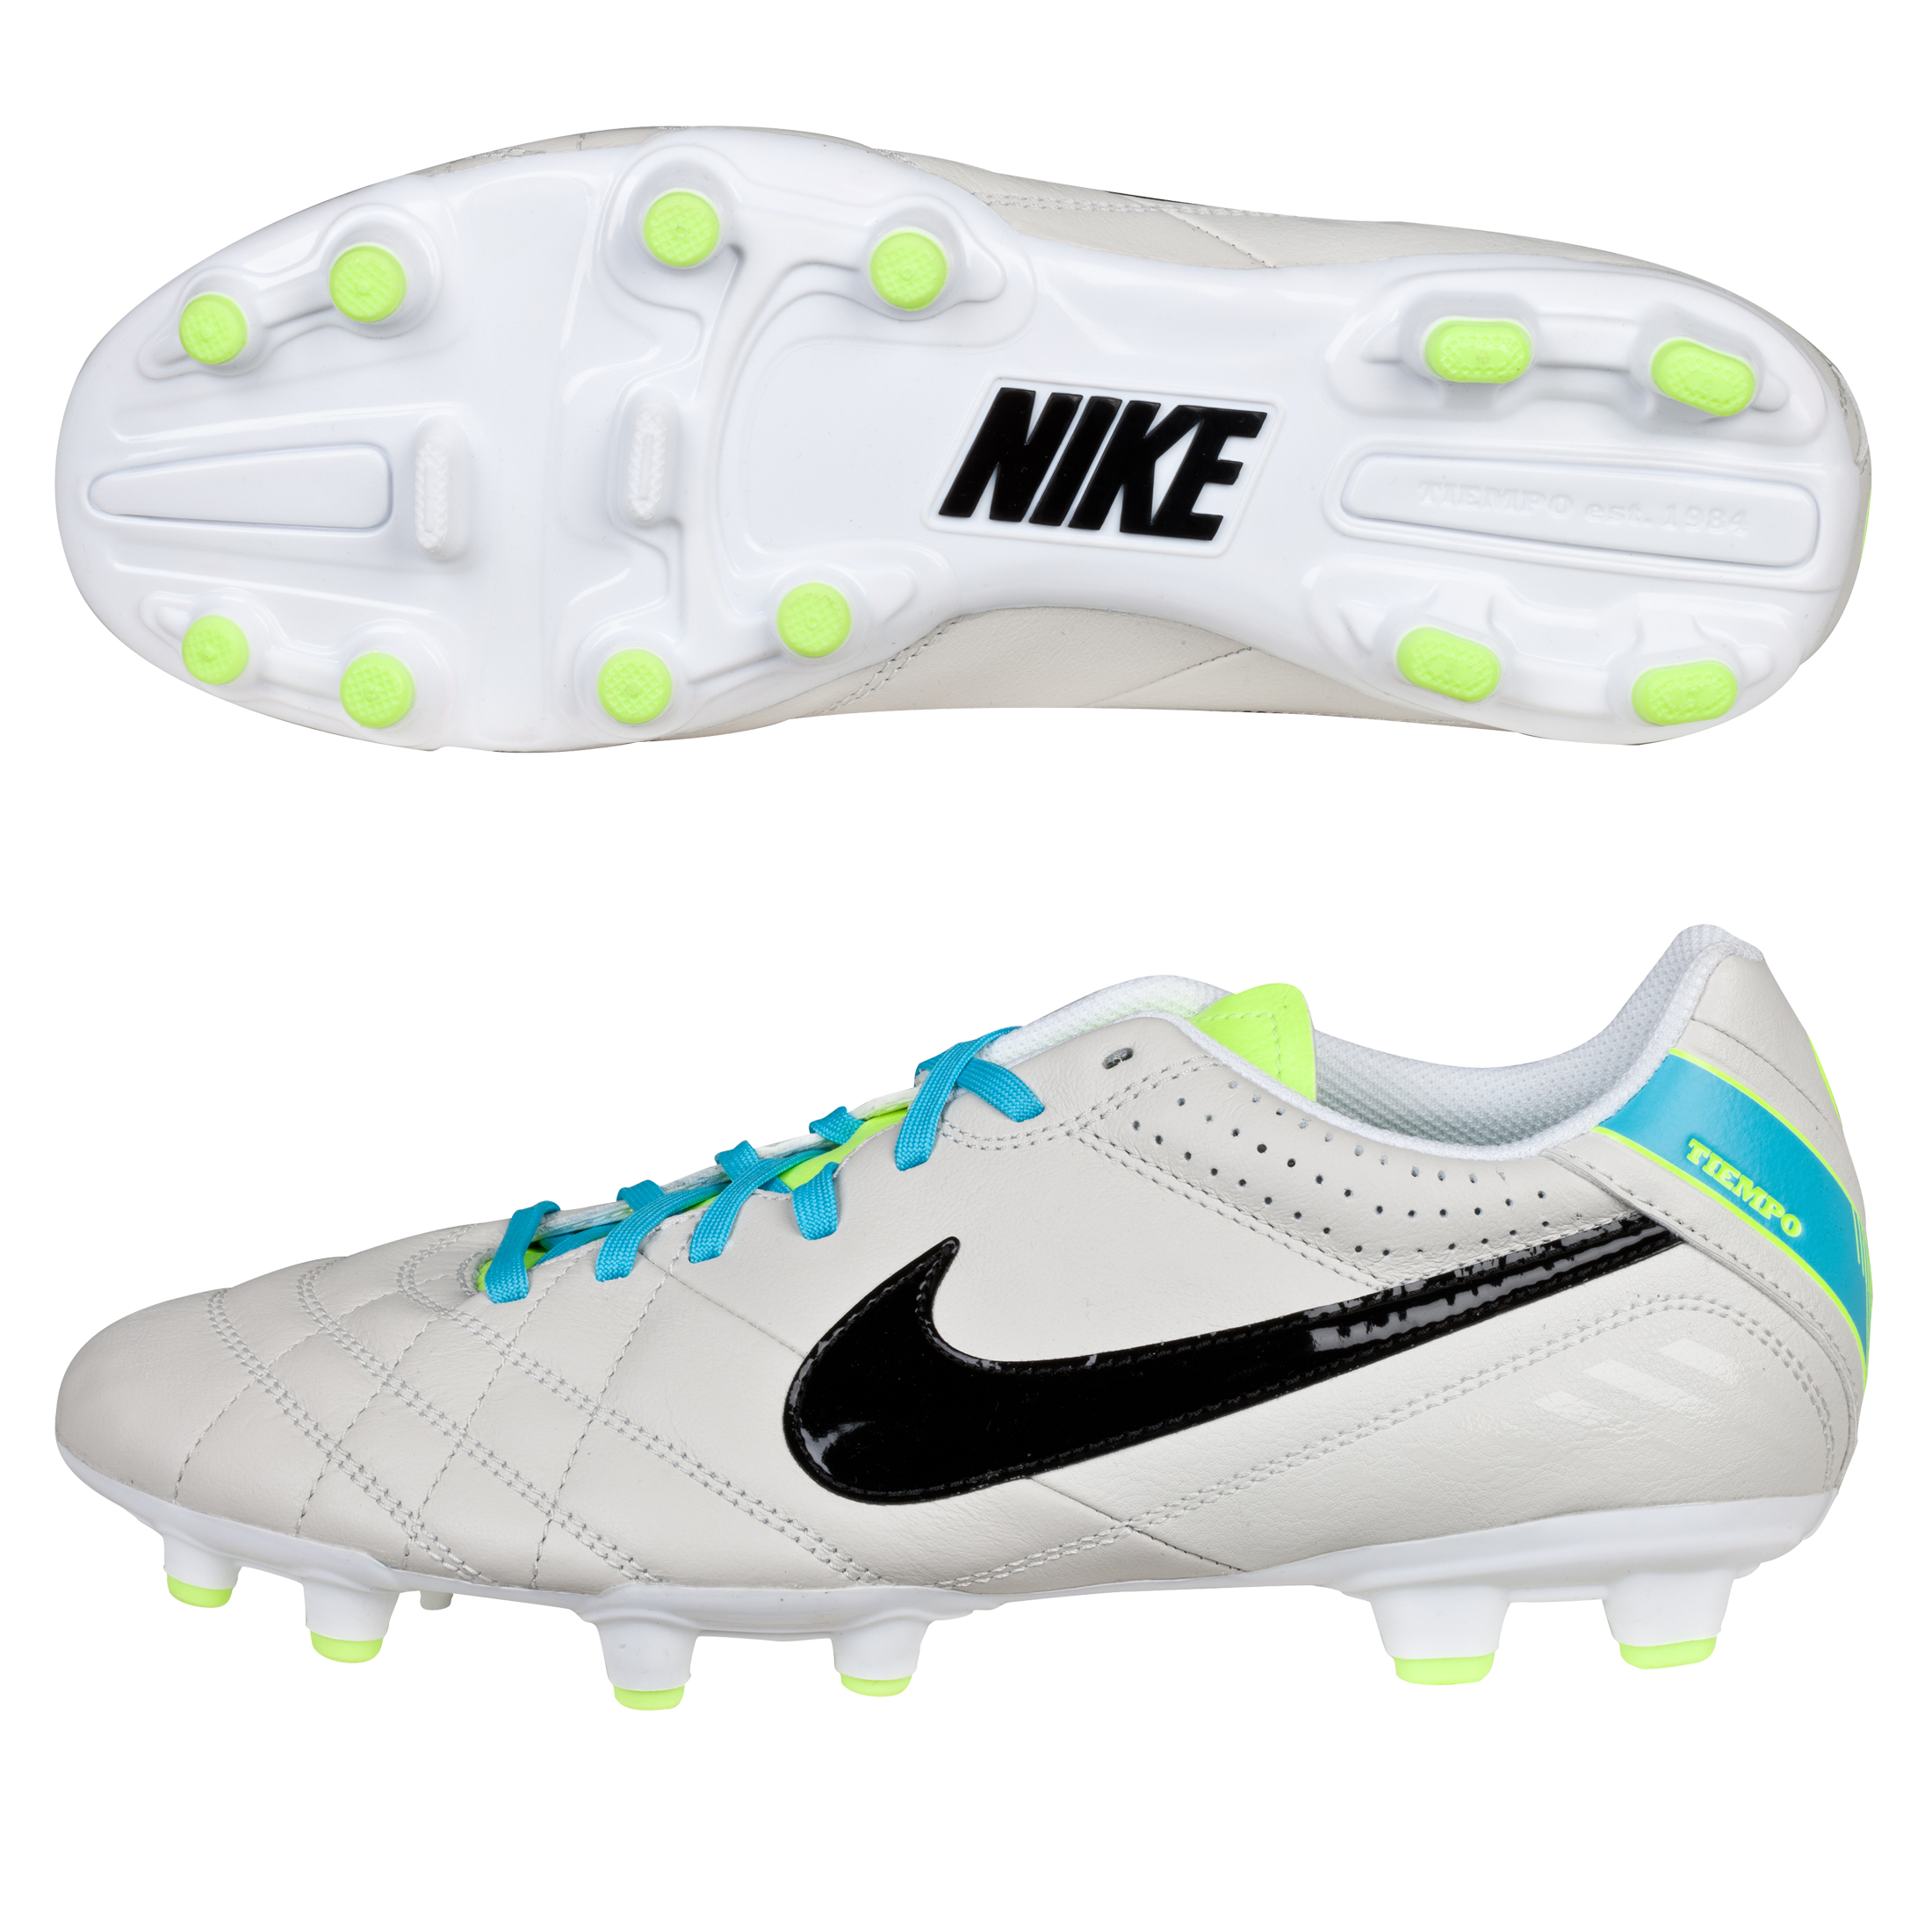 Nike Tiempo Natural IV Firm Ground Football Boots Lt Grey